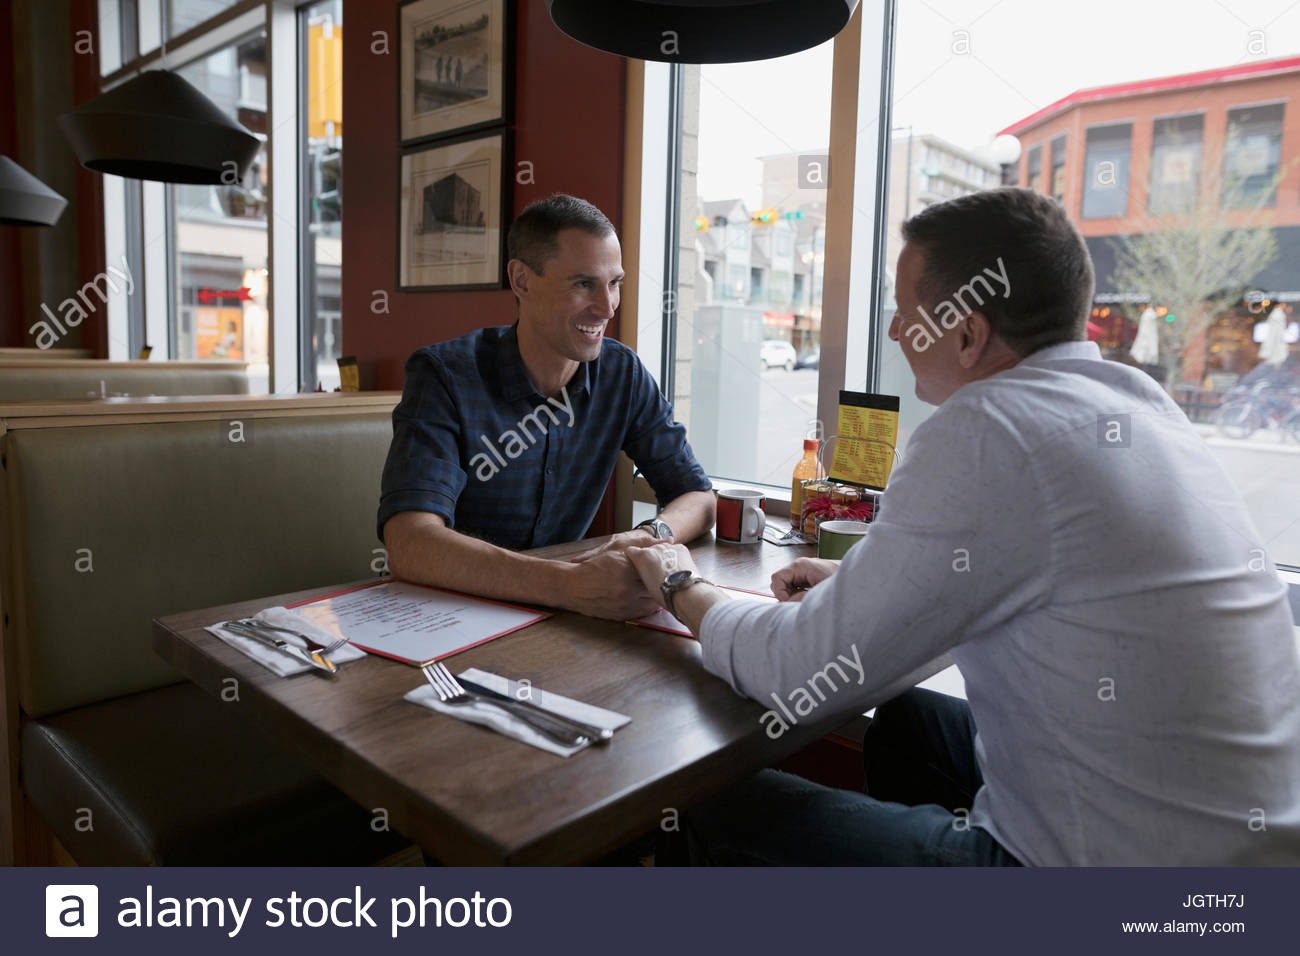 Homme affectueux gay couple holding hands at diner booth Photo Stock